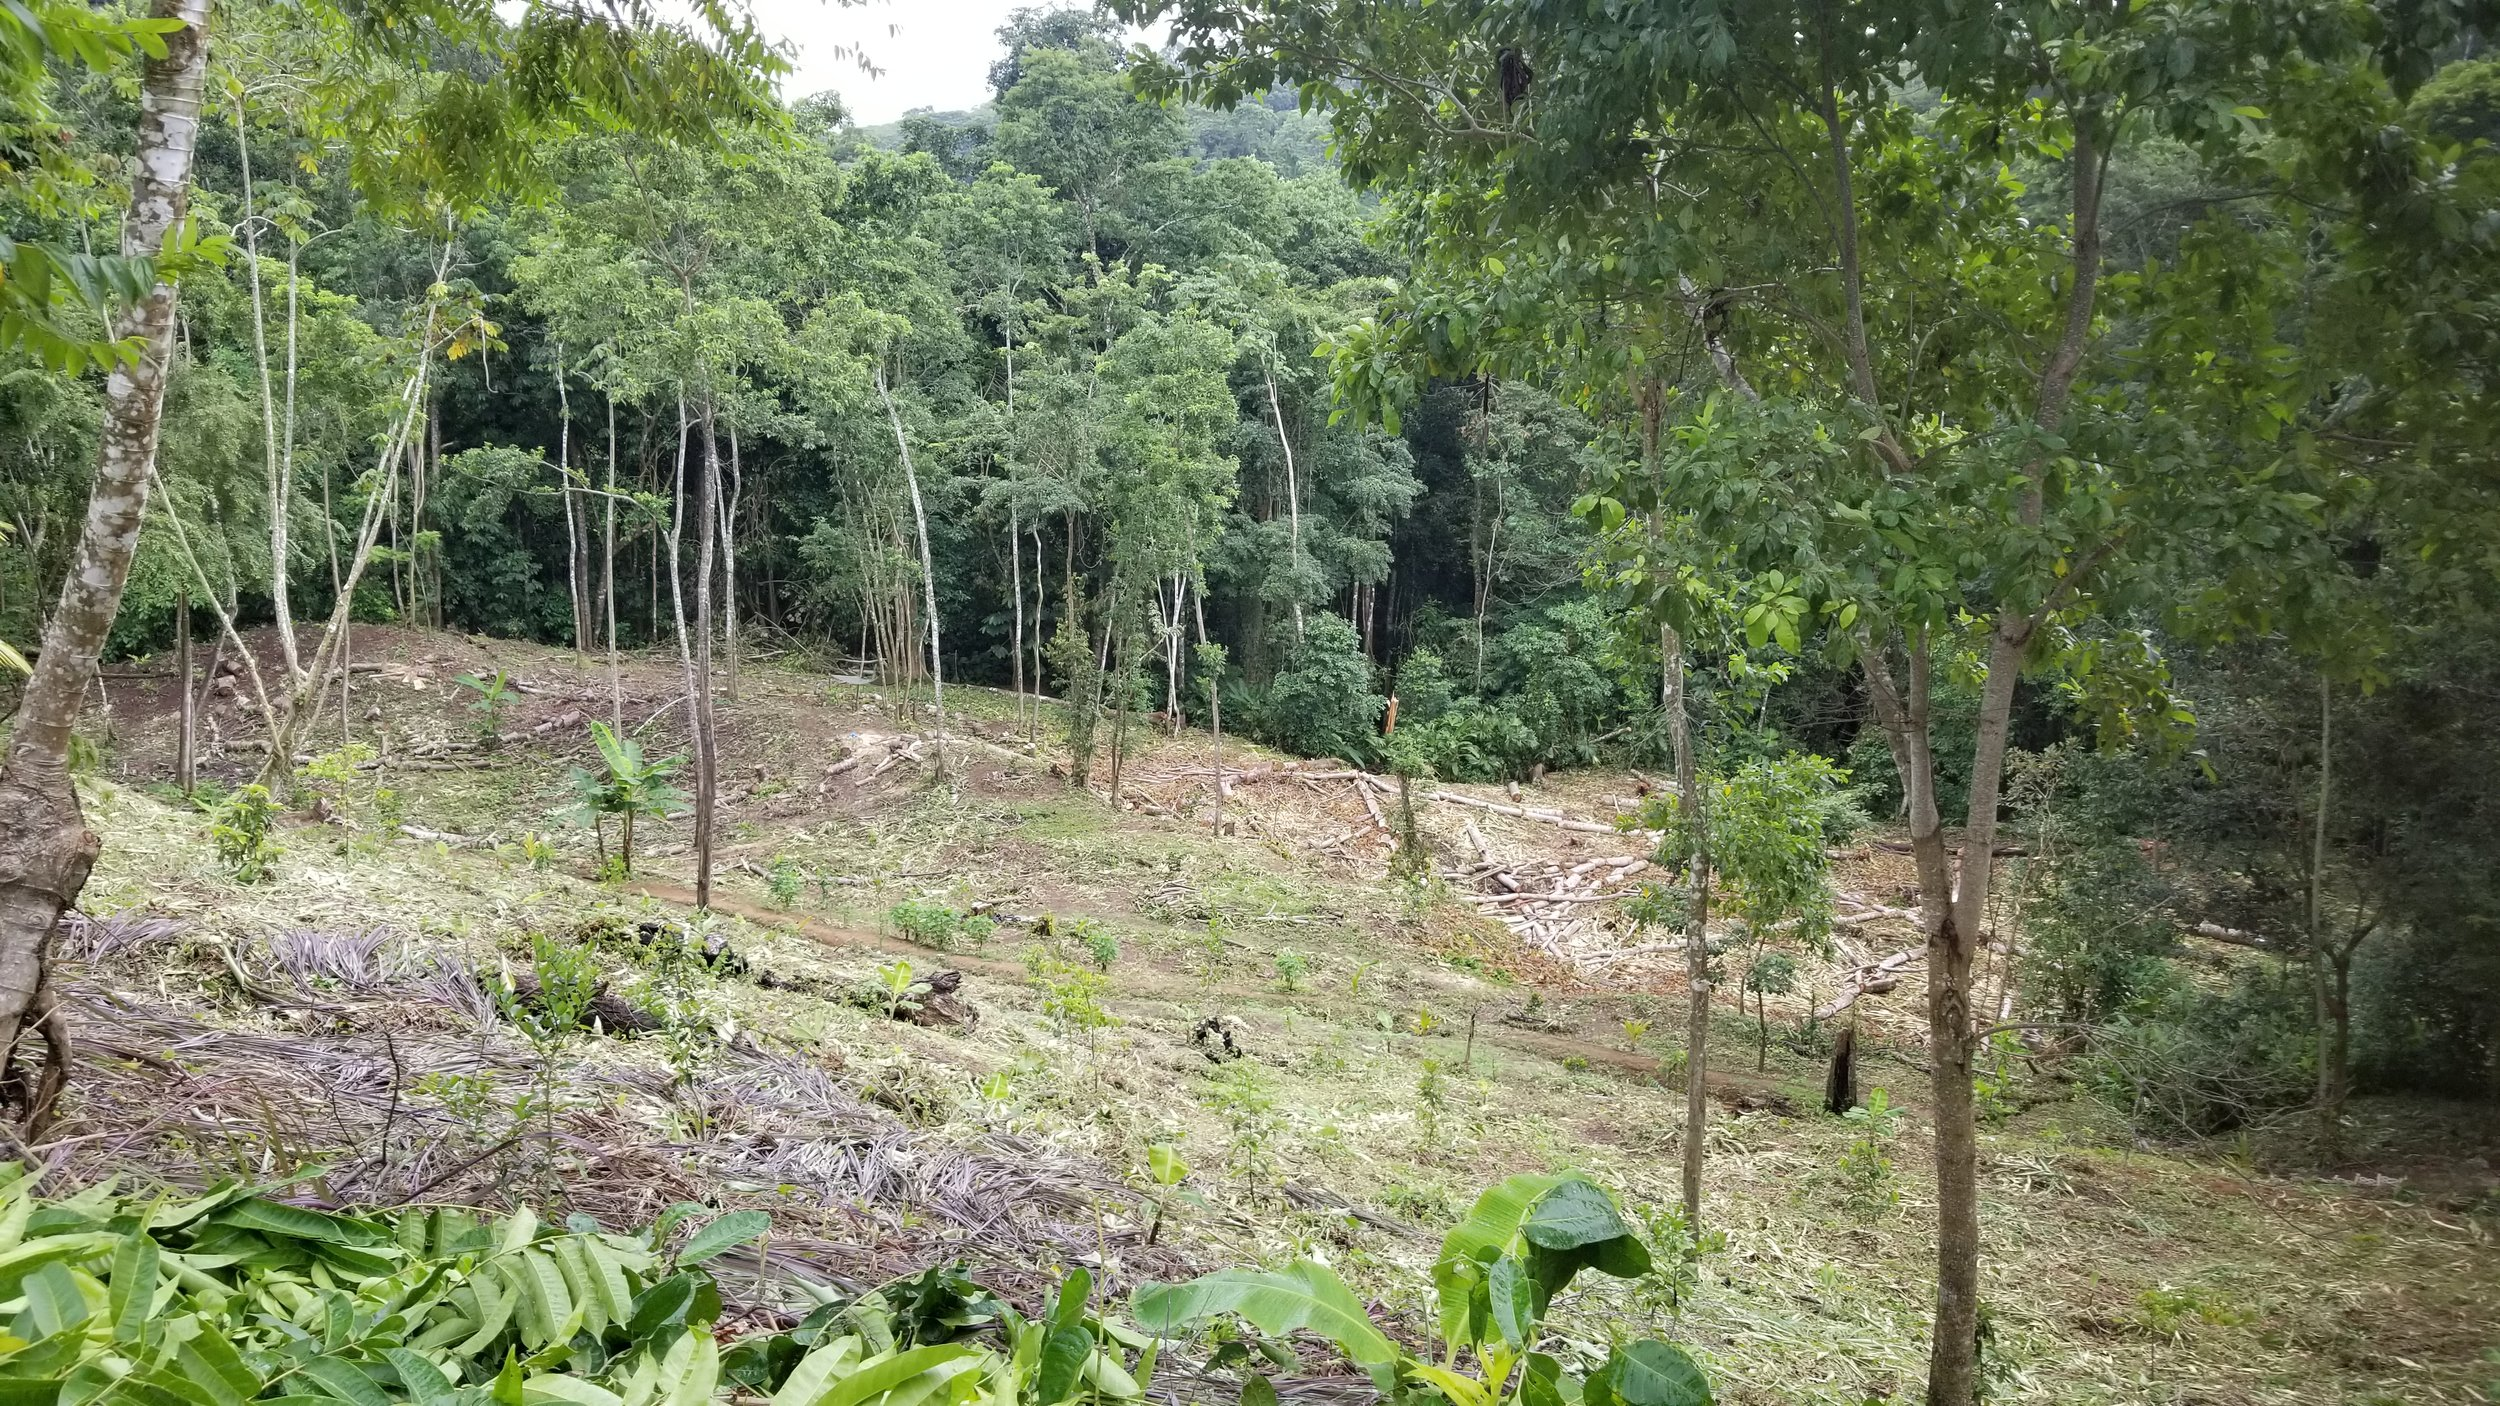 The recently clear site at Pura Vista with dozens of young fruit trees place din the ground.